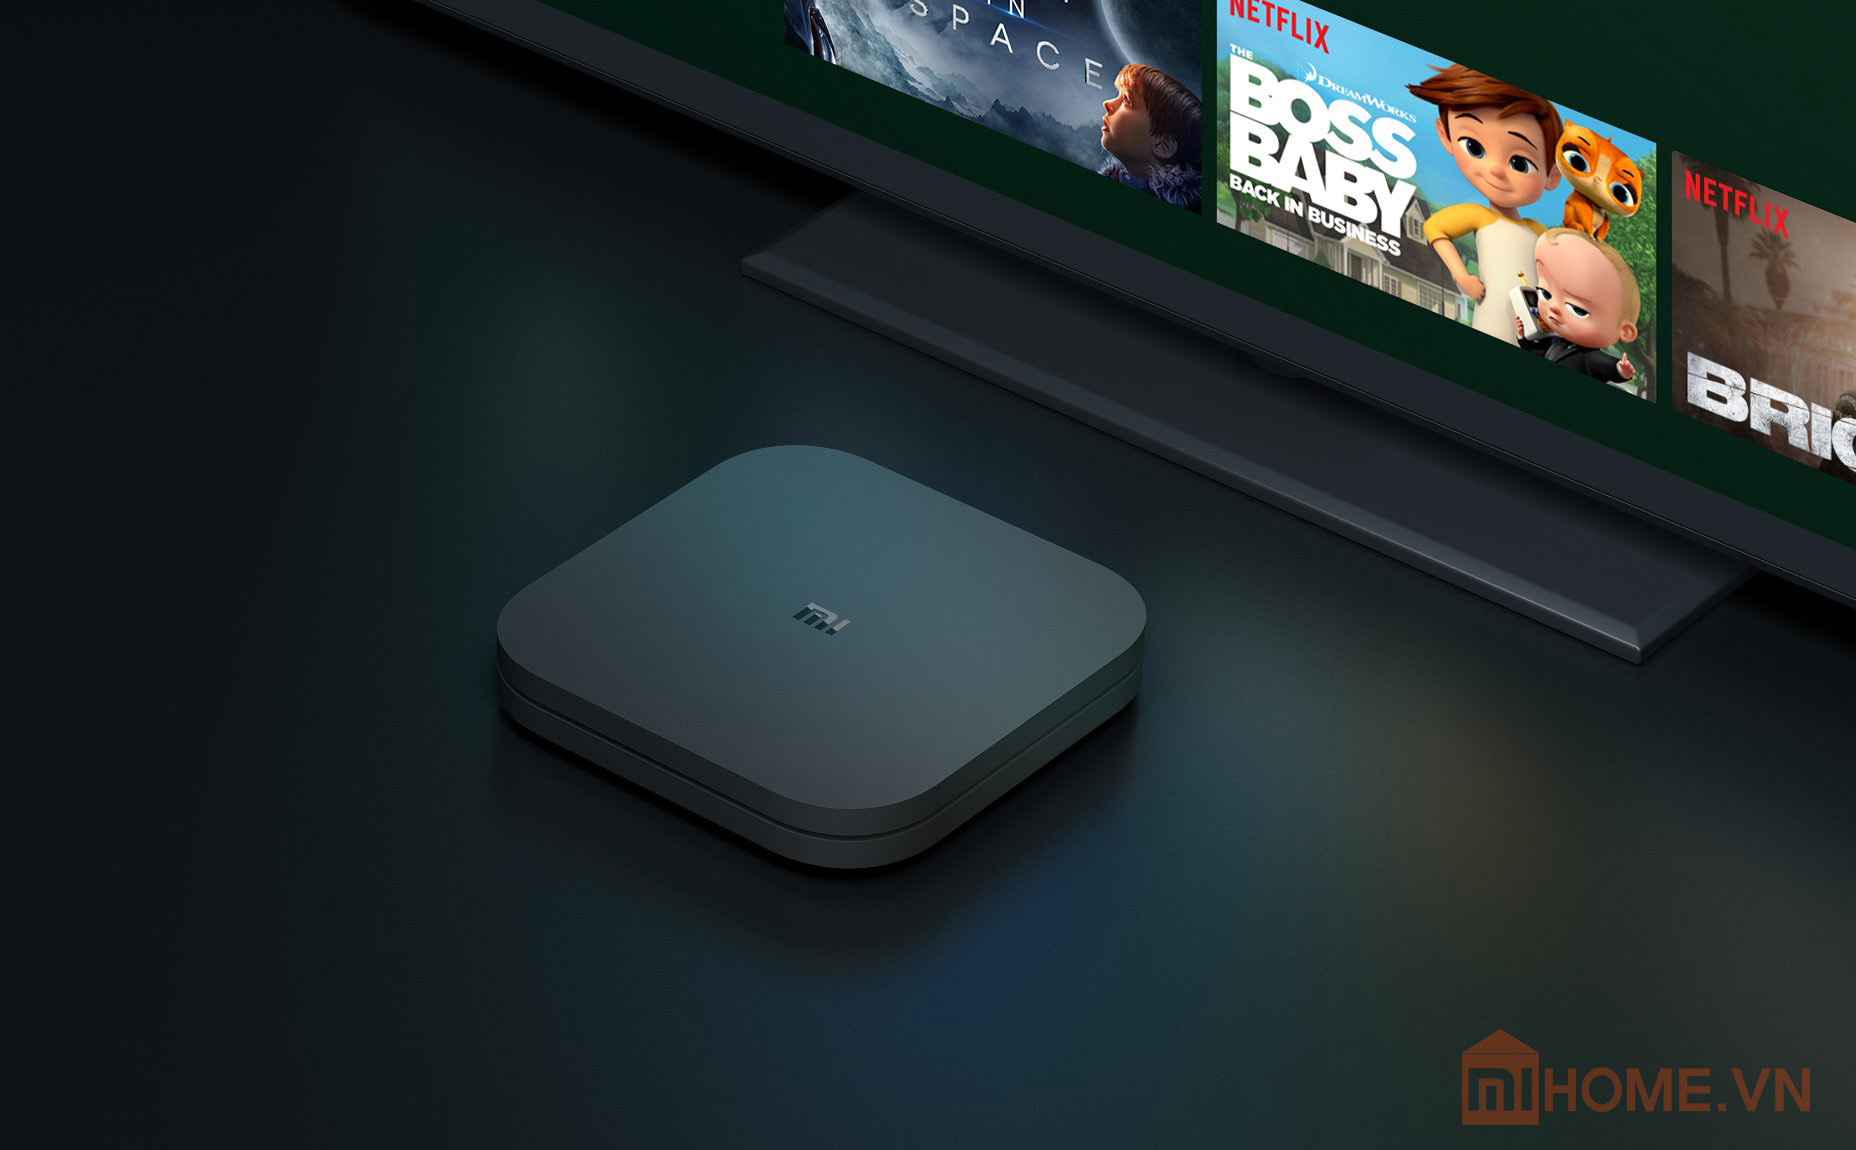 xiaomi mibox s android tv 4k hdr 2